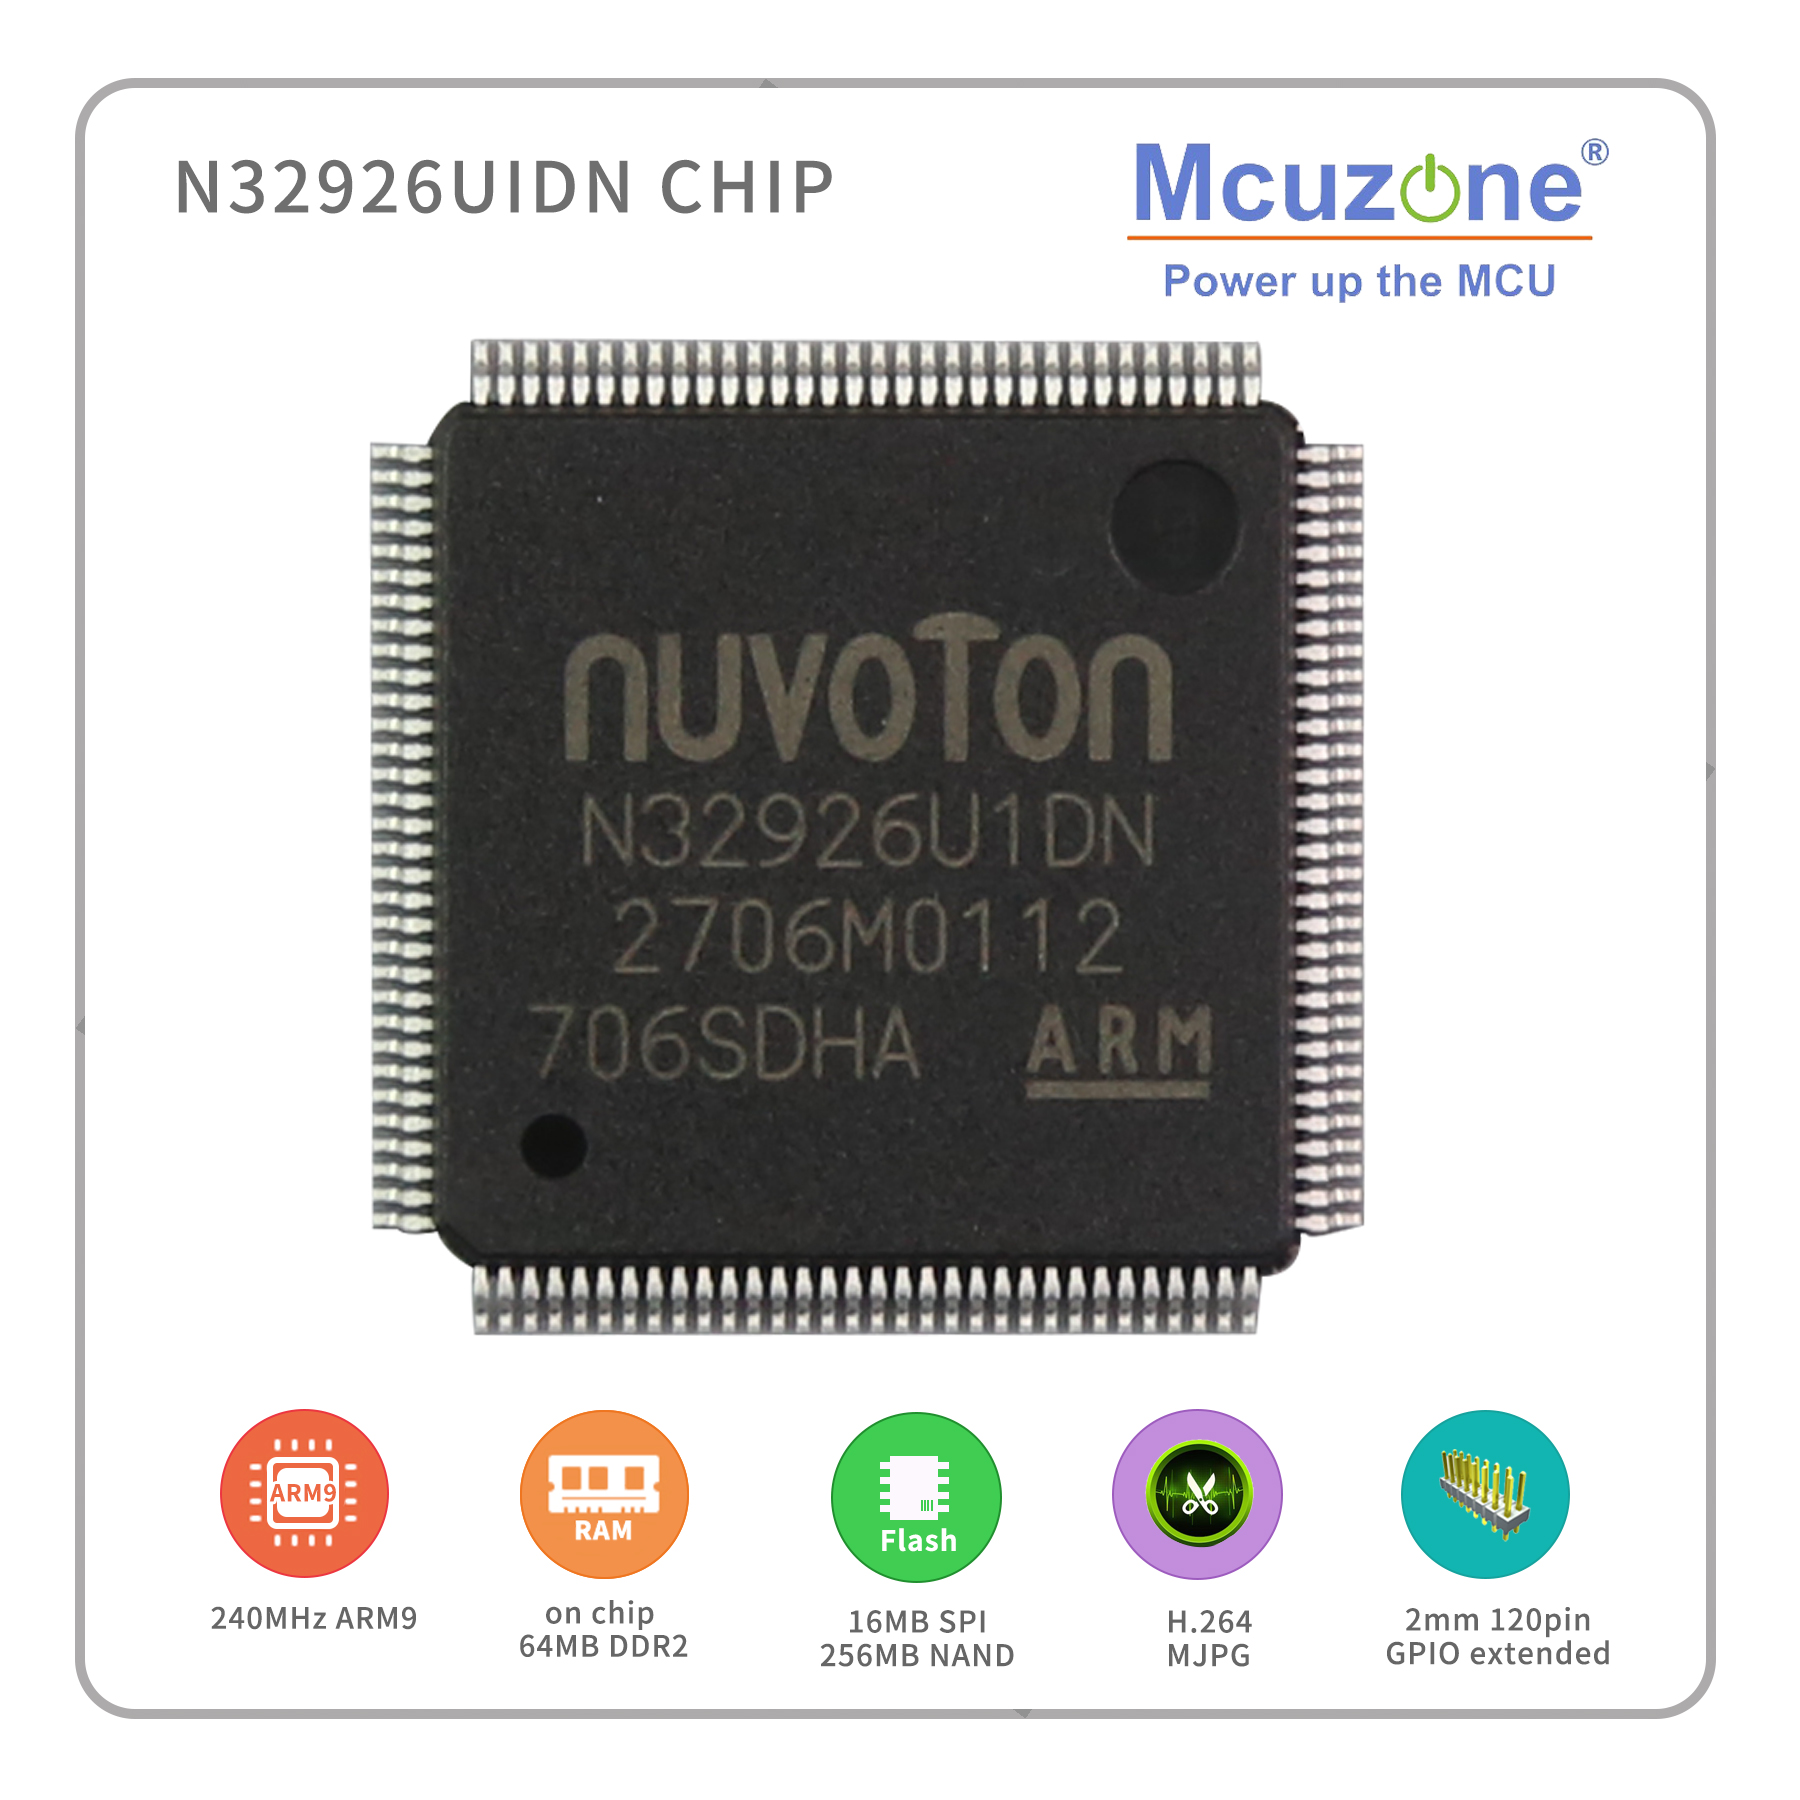 N32926U1DN, NUVOTON ARM926 Core Based Soc, With On Chip 64MB DDR2,  USB, LCDC, CMOS Interface, MJPEG H.264 Codec